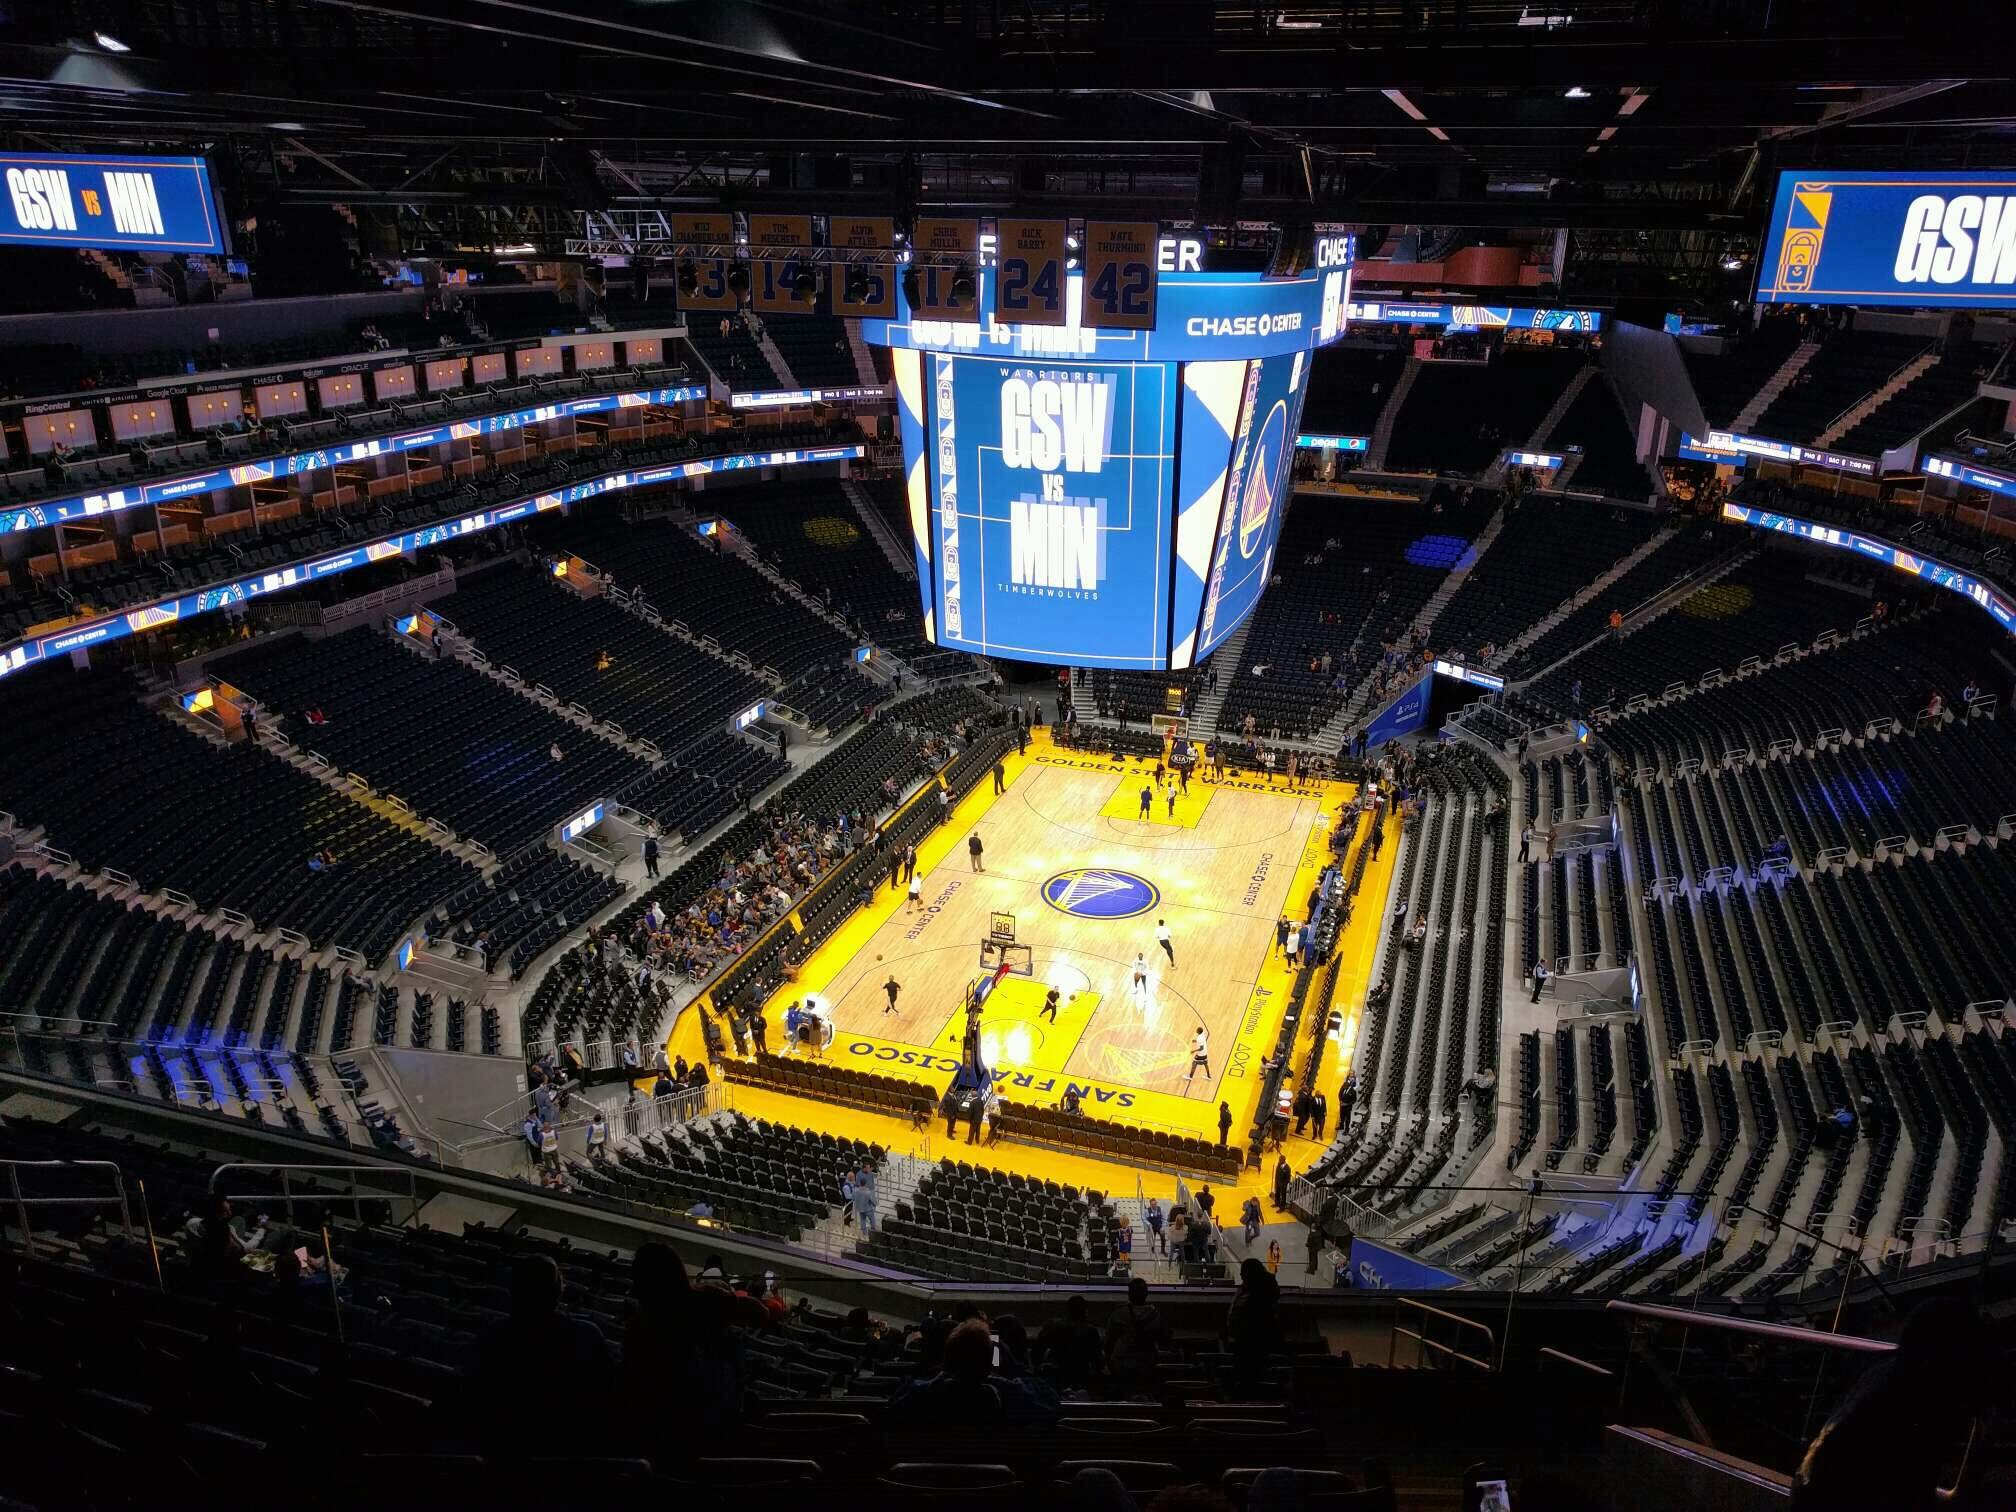 Chase Center Section 212 Row 16 Seat 7